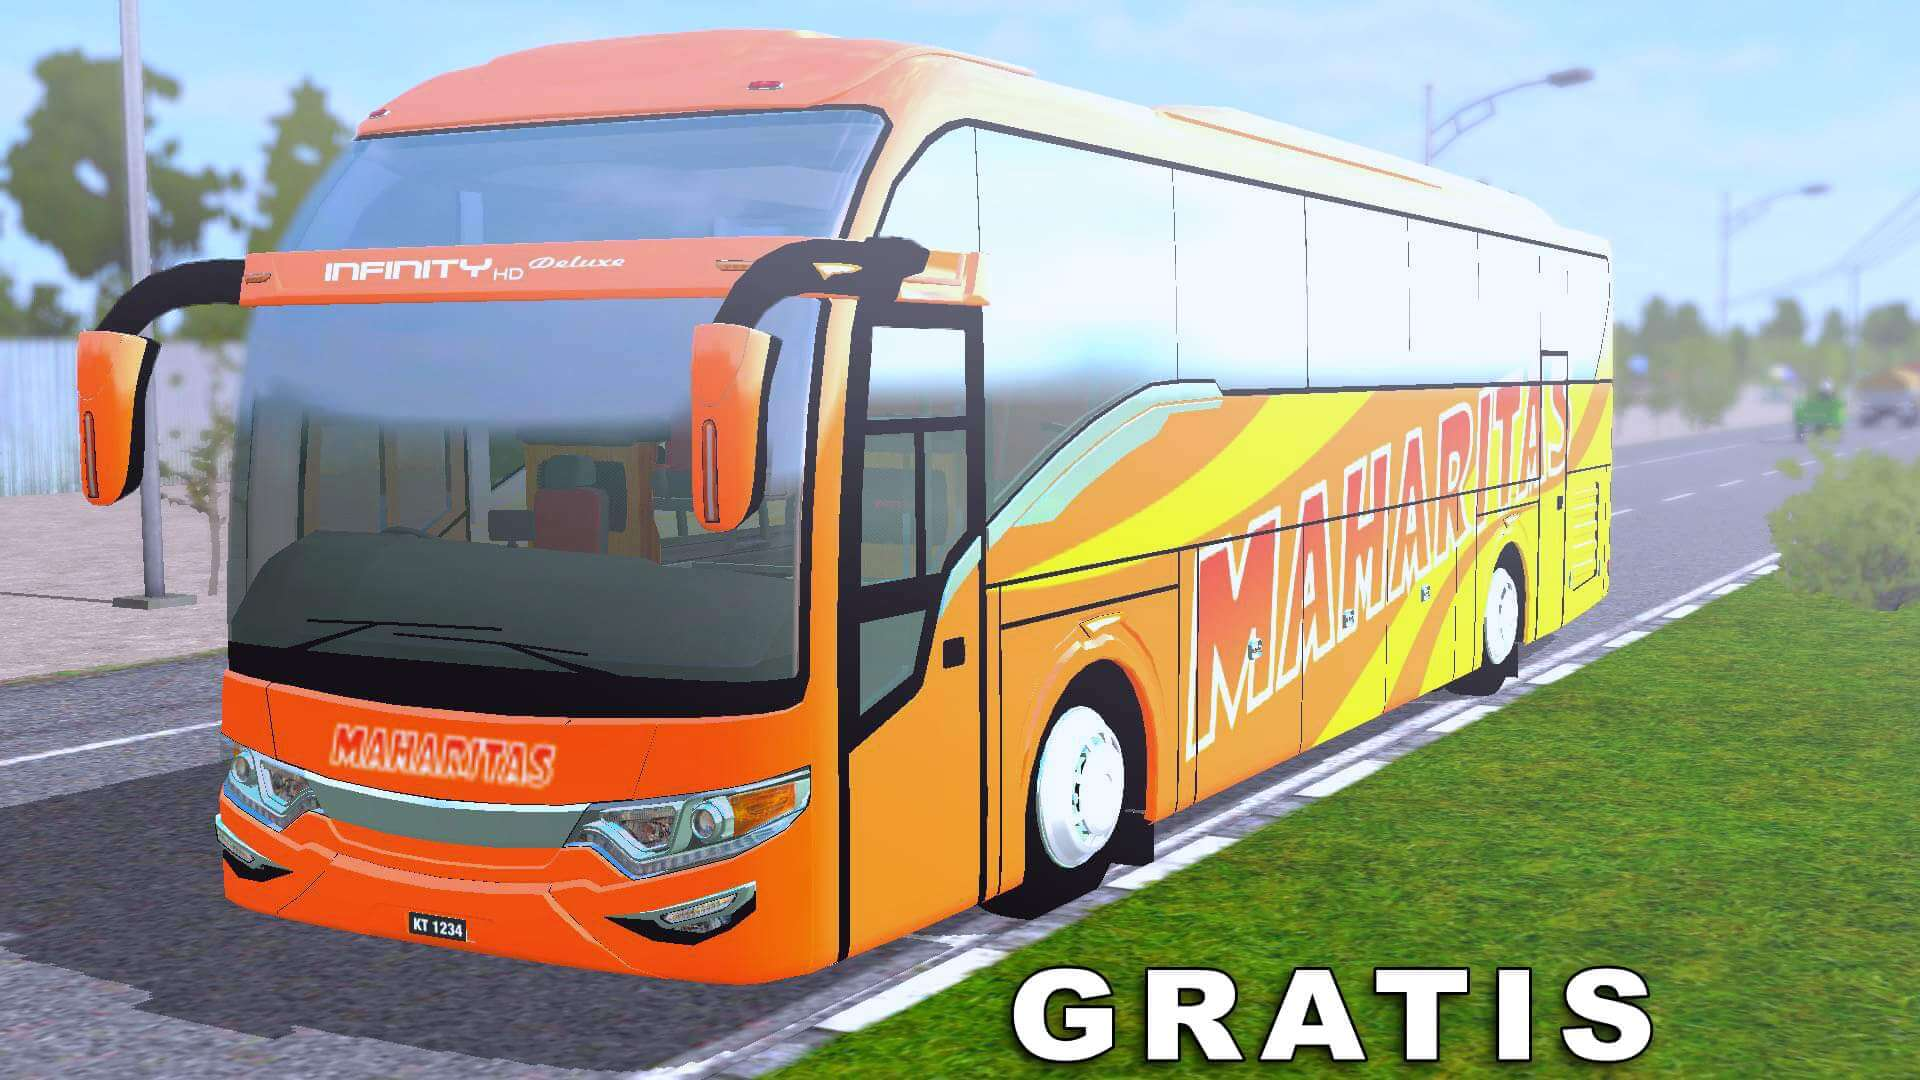 Download Infinity HD Deluxe Bus Mod for Bus Simulator Indonesia, Infinity HD Deluxe, BUSSID mod, Infinity HD Deluxe, Infinity HD Deluxe Bus Mod, Infinity HD Deluxe Mod, Infinity HD Deluxe Mod for BUSSID, Infinity HDD, Infinity HDD Mod for BUSSID, Mod BUSSID, Mod for BUSSID, SGCArena